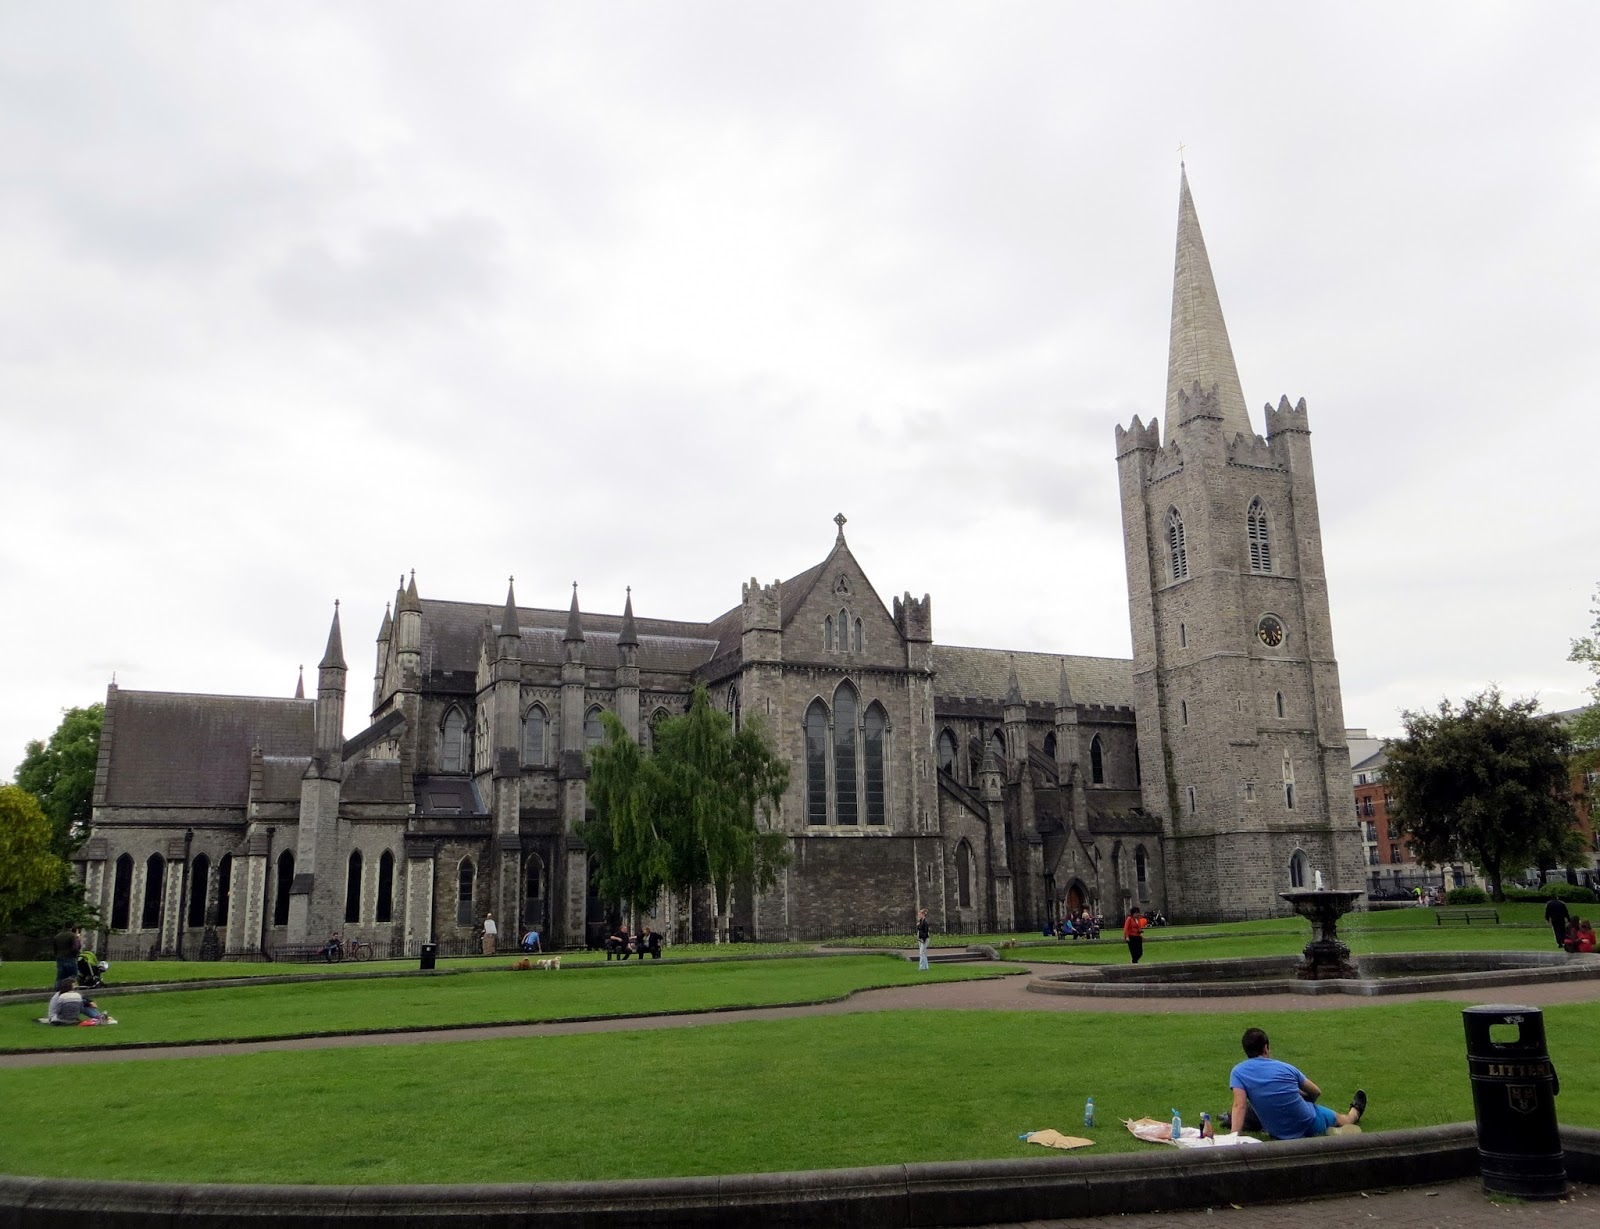 st patricks cathedral, Dublin, Ireland, Europe, things to do in dublin, guide to dublin, travel blog, travelling, the custom house, liffey, ireland photography, dublin photography, eire, Guinness, temple bar, irish pub, traditional, cobbled street, beautiful, docks, dublin spire, O'Connell street, post office, LUAS, tram, Dublin Castle, half penny bridge, ha'penny bridge, liffey bridge, wellington bridge, book of kells, Trinity college, sculpture, library, long room, st stephens green, famine memorial, jeanie johnston, long ship, irish immigrants, christ church cathedral, kilmainham gaol, prison, revolution, rebellion, 1916, 1921, irish free state, ira, stone breakers yard, victorian wing, st james brewery, guiness storehouse, gravity bar,